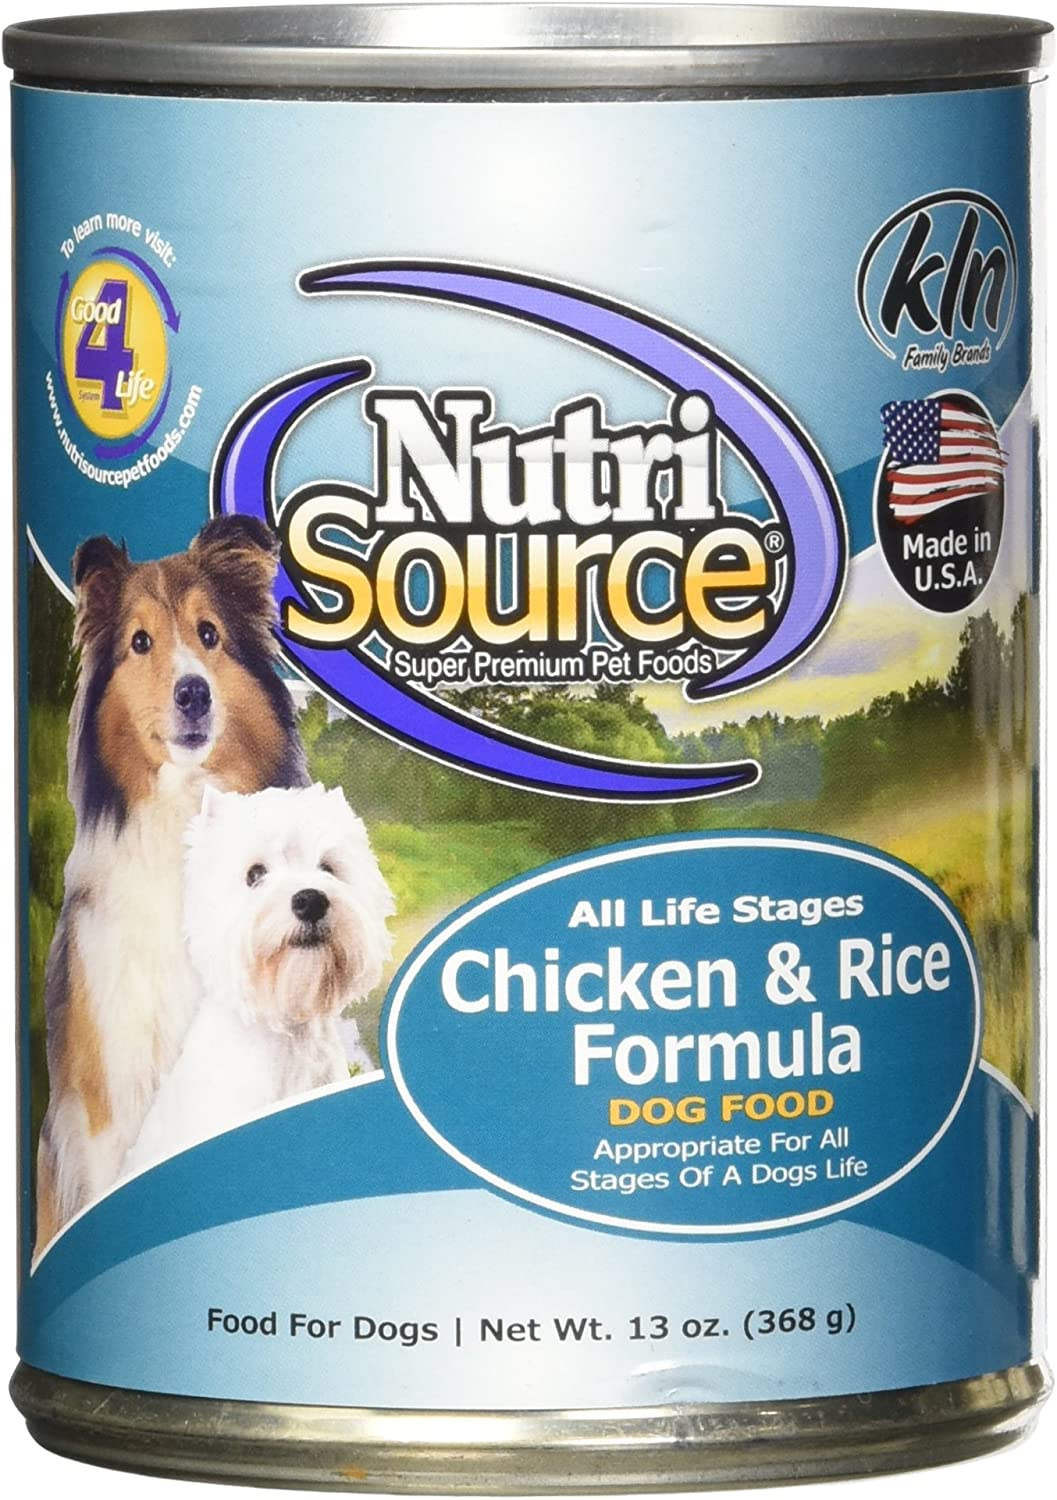 Tuffy S Pet Food Nutrisource 12-Pack Of 13 Oz Canned Food For Dogs